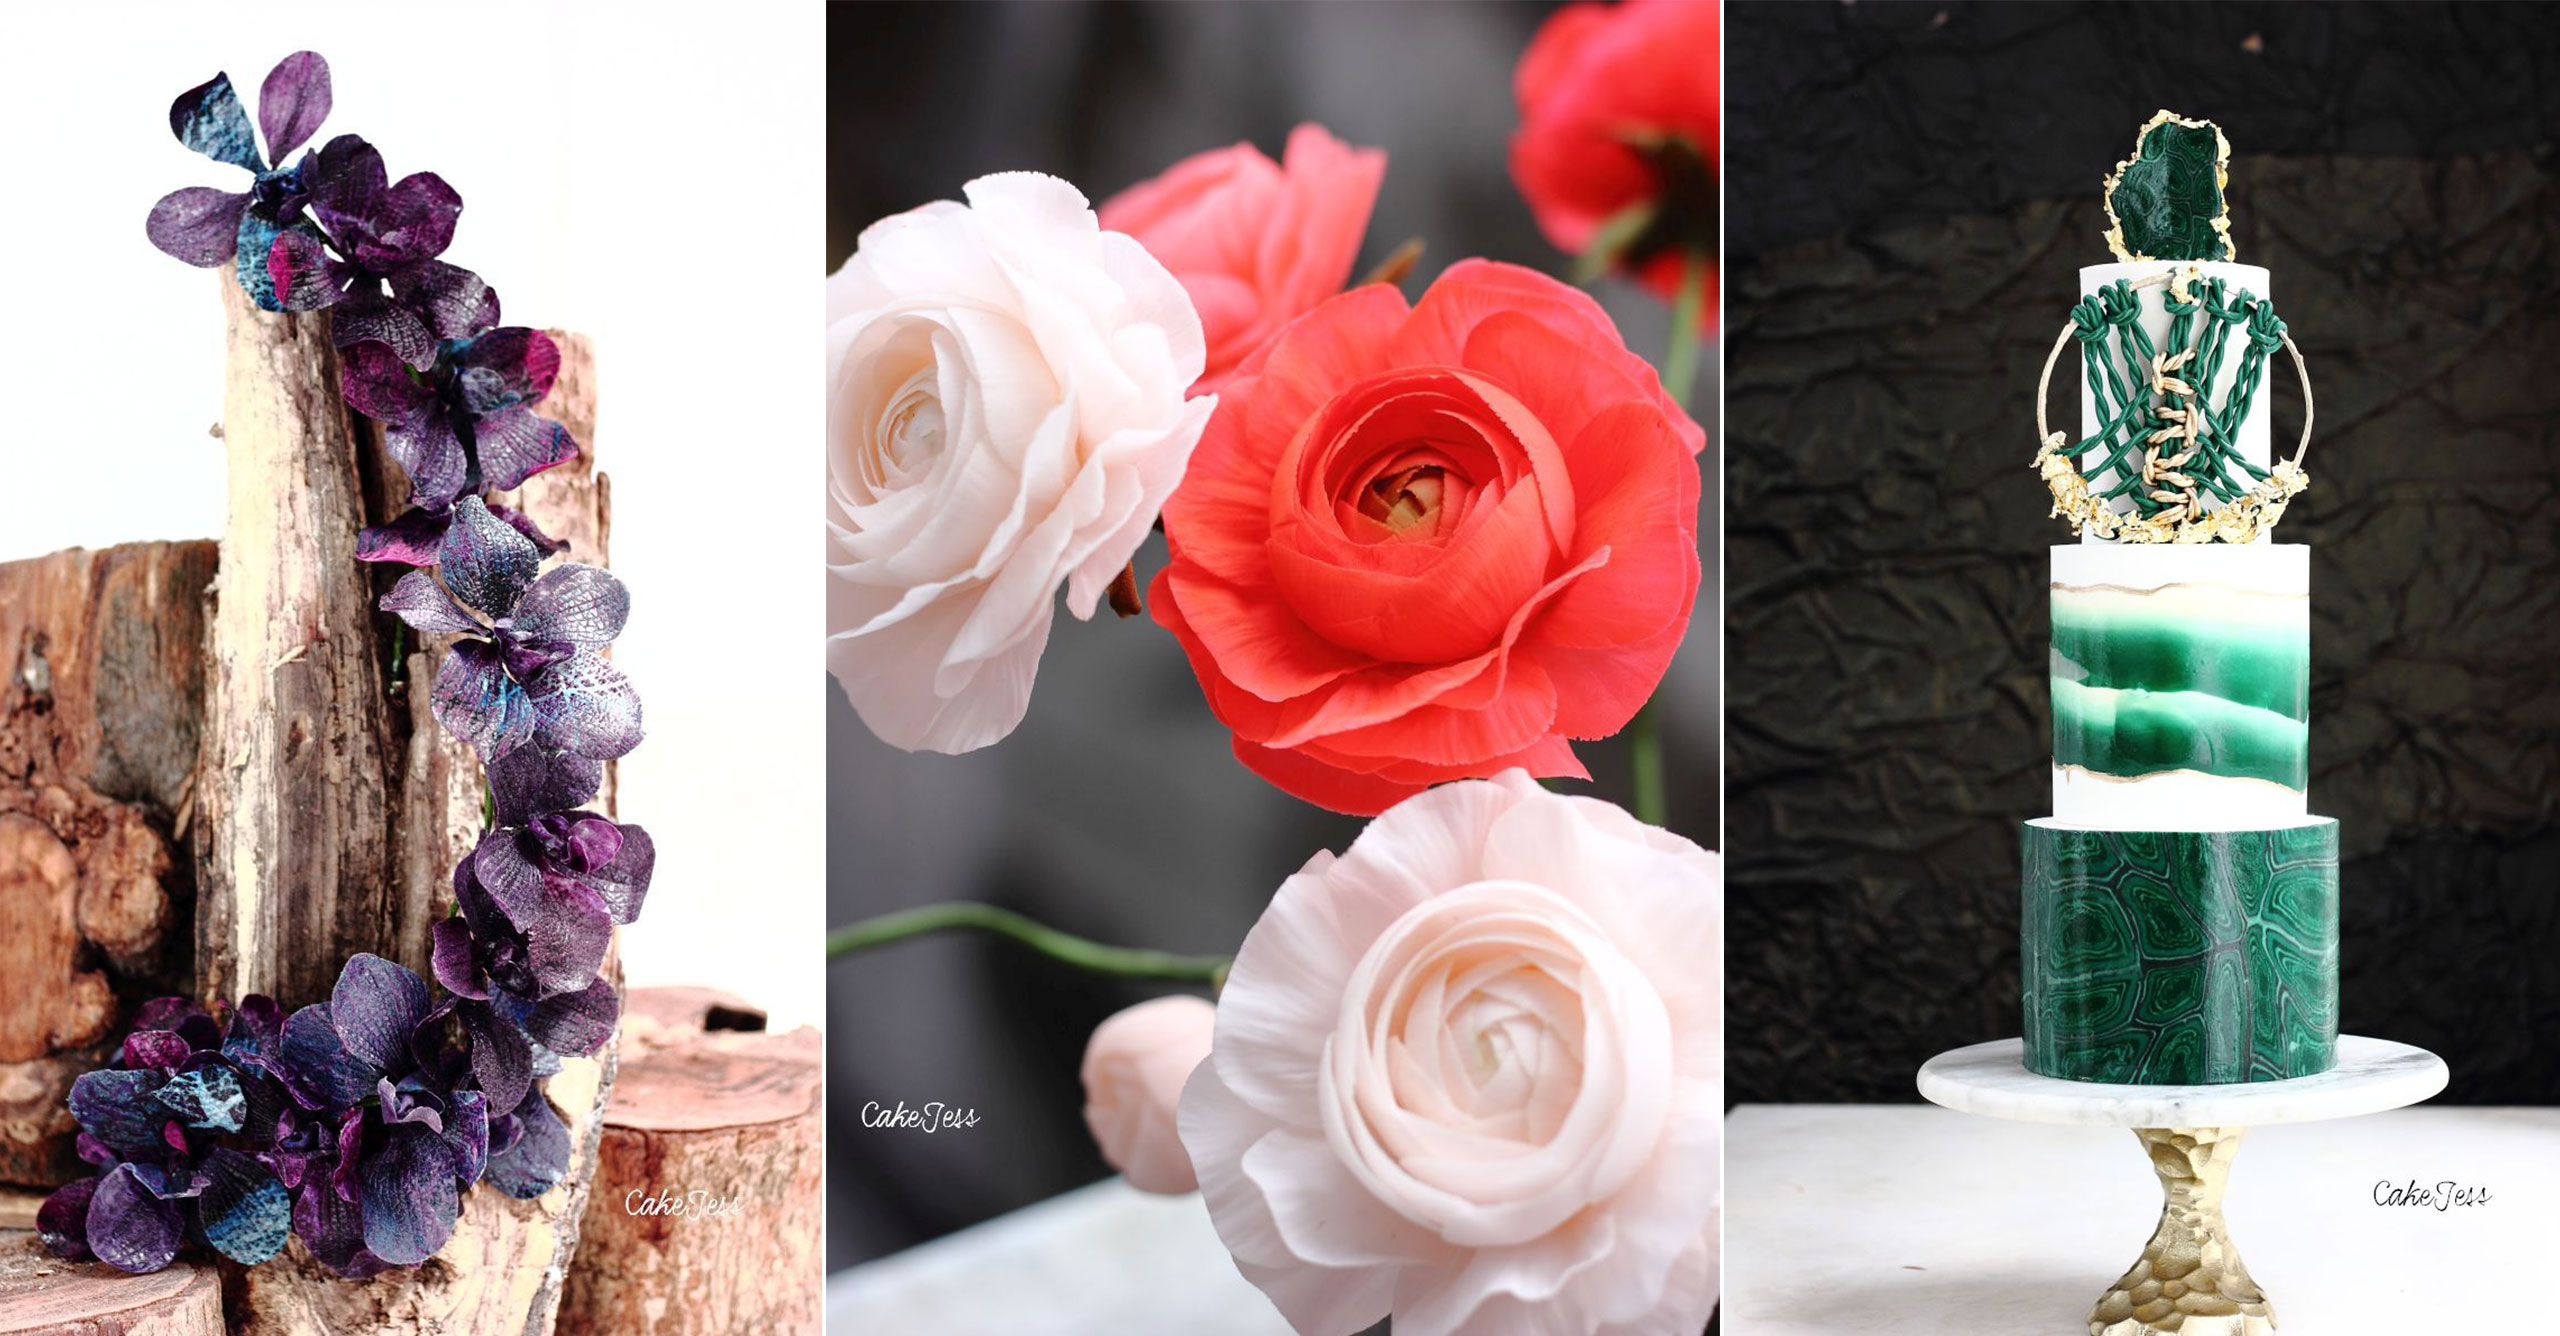 Masterclass of flowers & textures with modified modelling chocolate